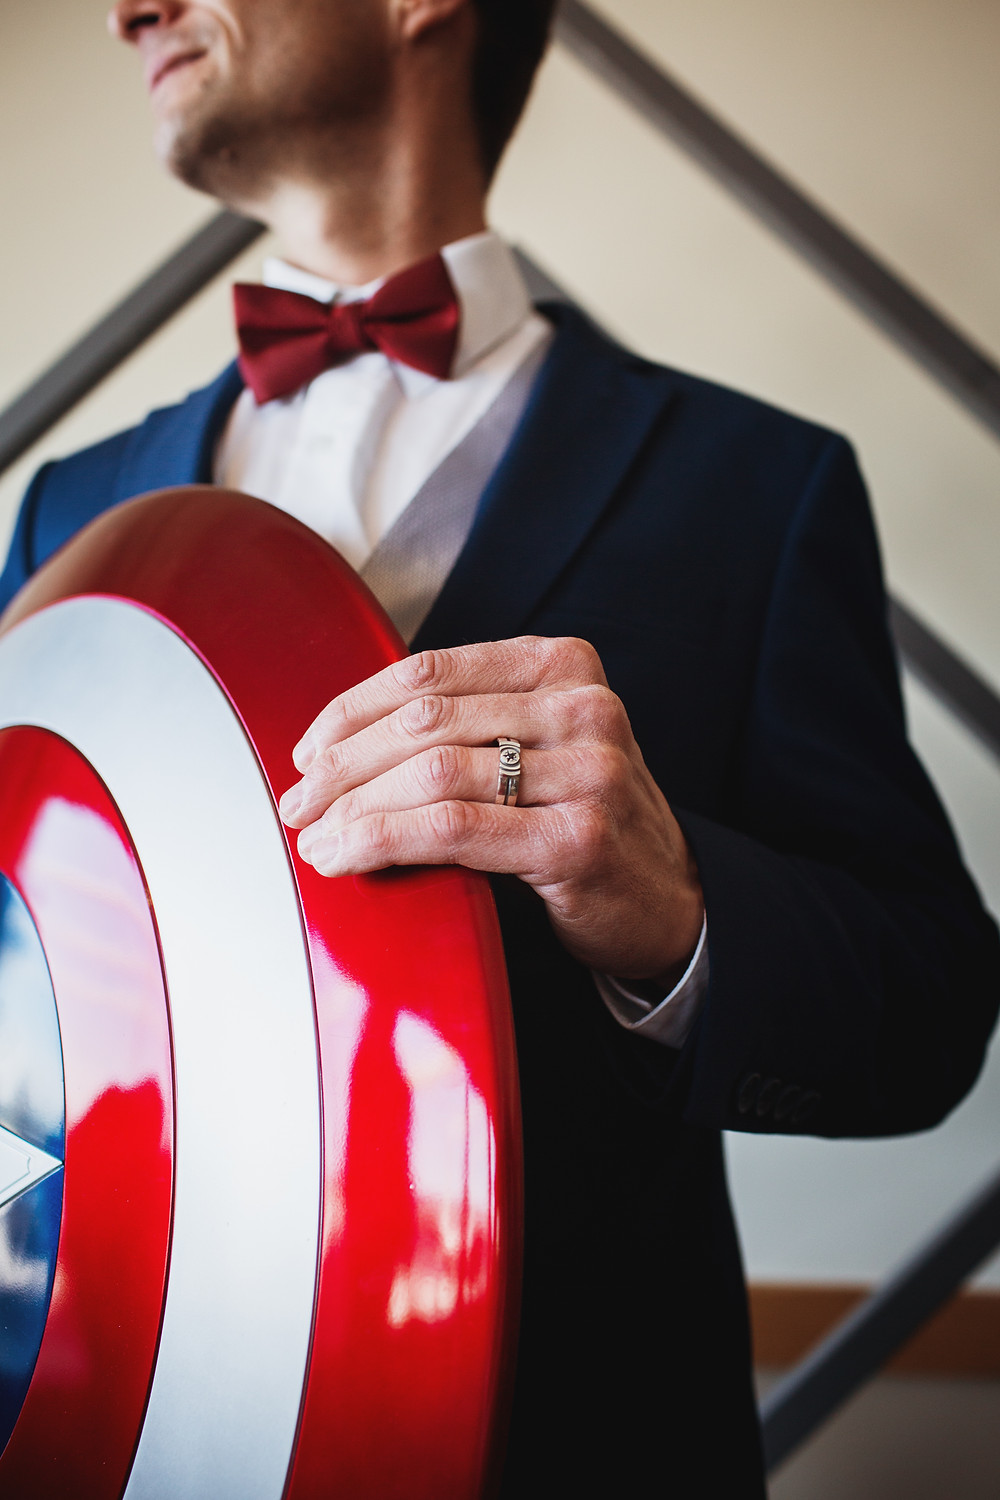 Wedding band inspired by Captain America created by Metal Wendler.